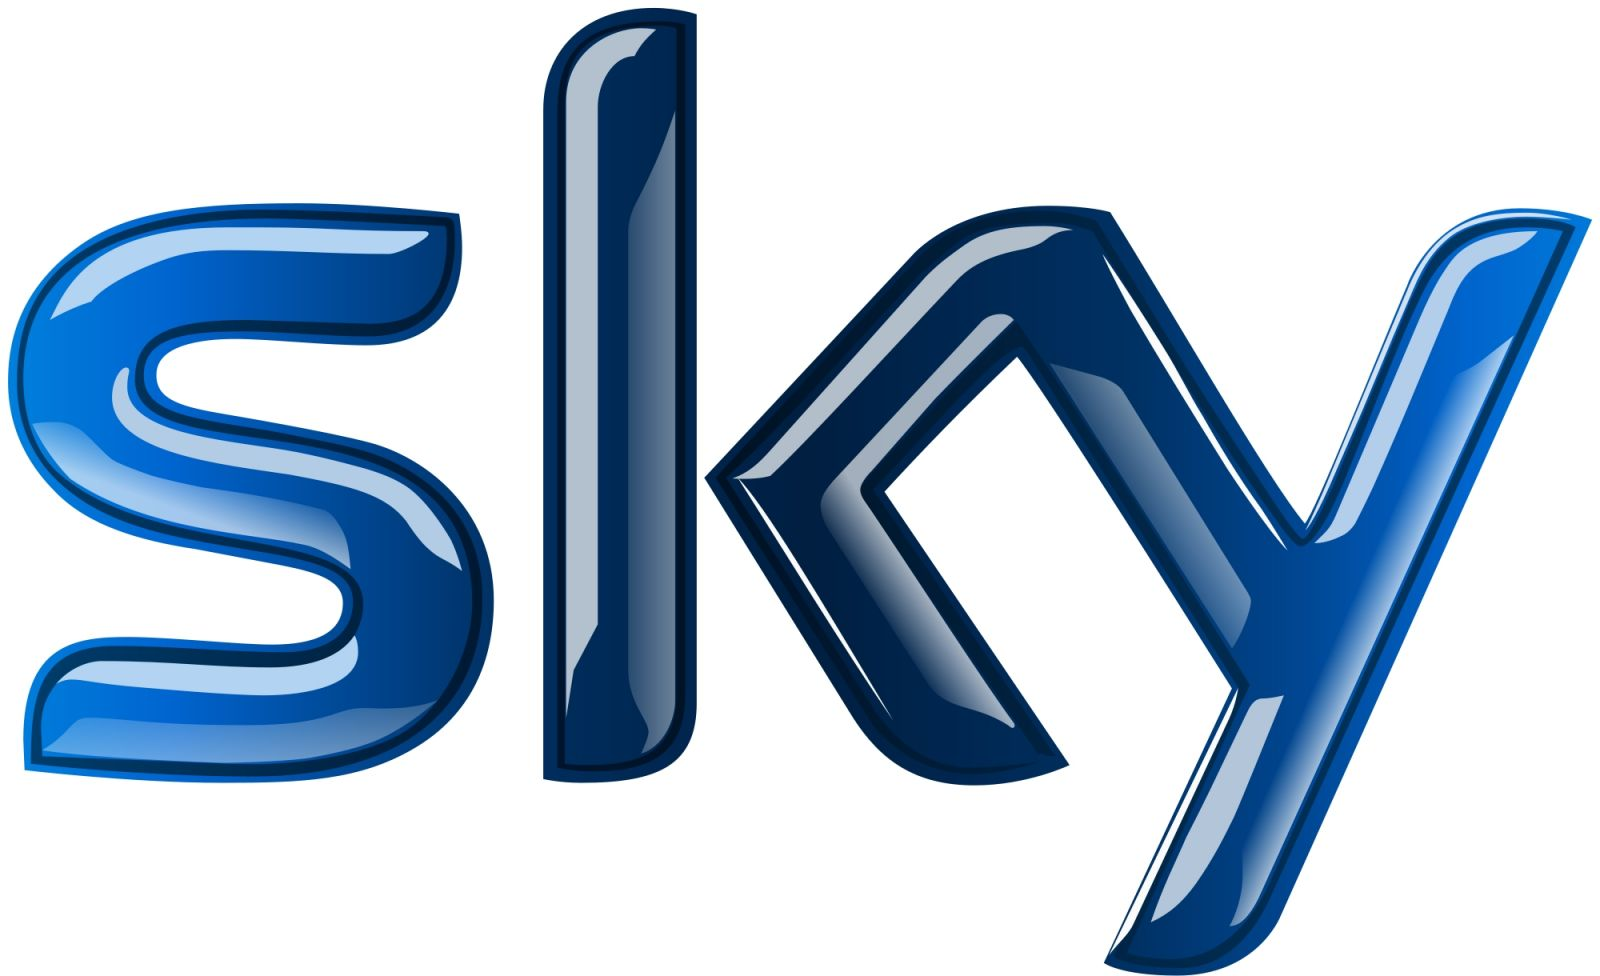 Compare Internet Providers >> Sky Bundles | Compare Phone, TV & Broadband Deals from Sky